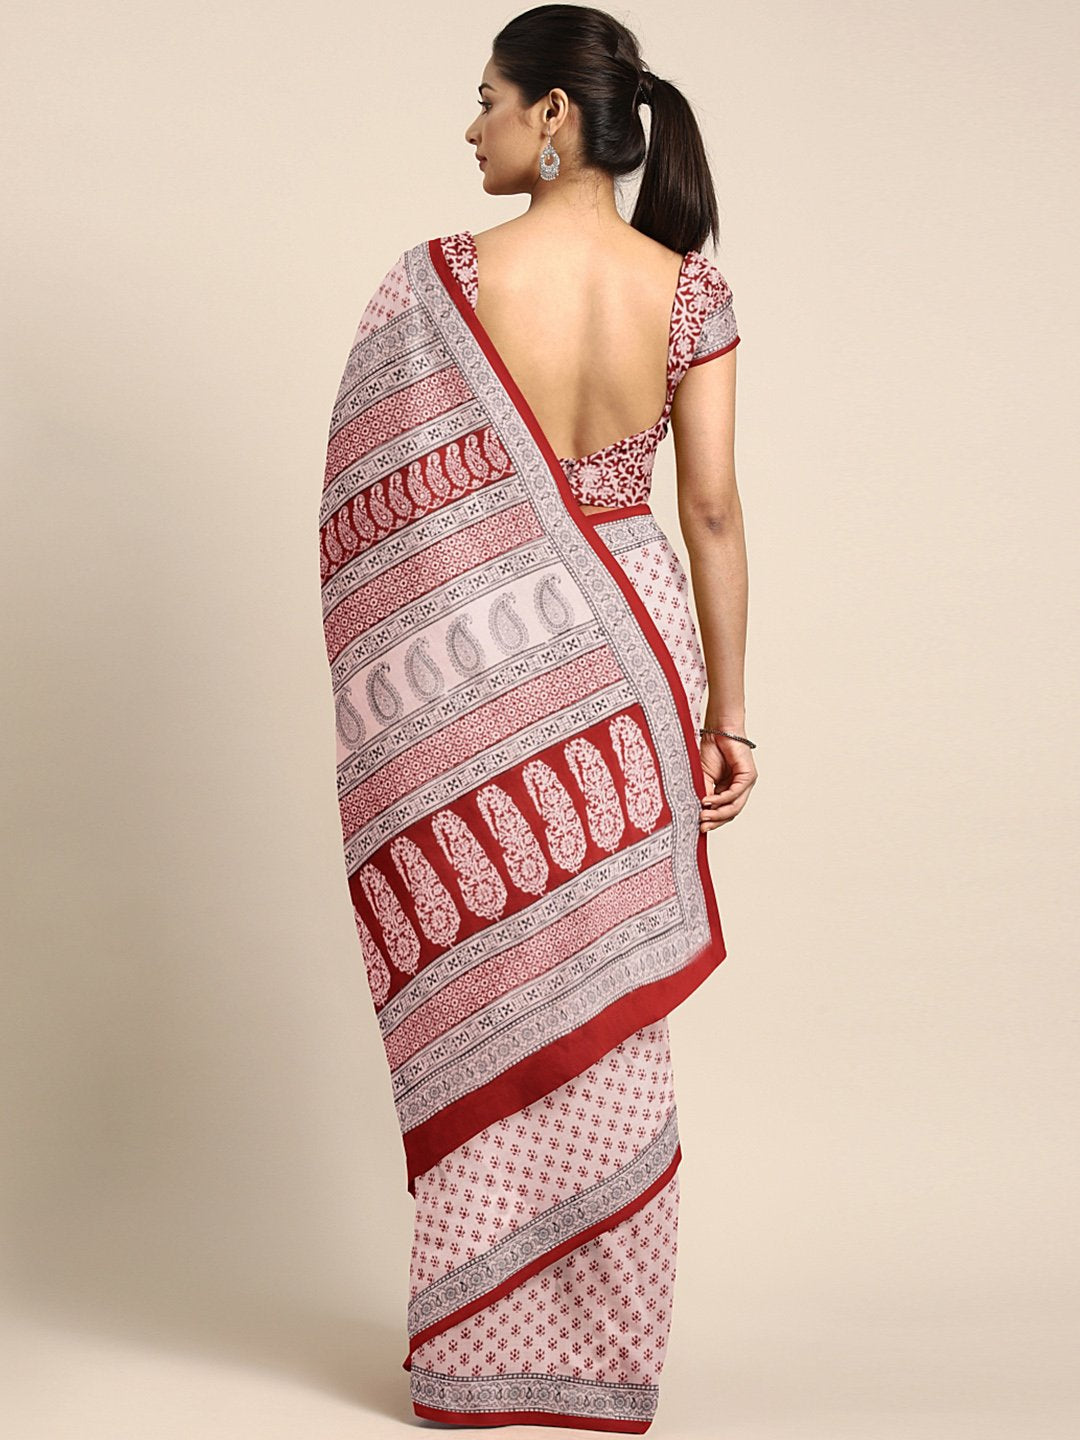 Pink Maroon Handblock Print Saree-Saree-Kalakari India-MYBASA0018-Bagh, Cotton, Geographical Indication, Hand Blocks, Hand Crafted, Heritage Prints, Natural Dyes, Sarees, Sustainable Fabrics-[Linen,Ethnic,wear,Fashionista,Handloom,Handicraft,Indigo,blockprint,block,print,Cotton,Chanderi,Blue, latest,classy,party,bollywood,trendy,summer,style,traditional,formal,elegant,unique,style,hand,block,print, dabu,booti,gift,present,glamorous,affordable,collectible,Sari,Saree,printed, holi, Diwali, birthda